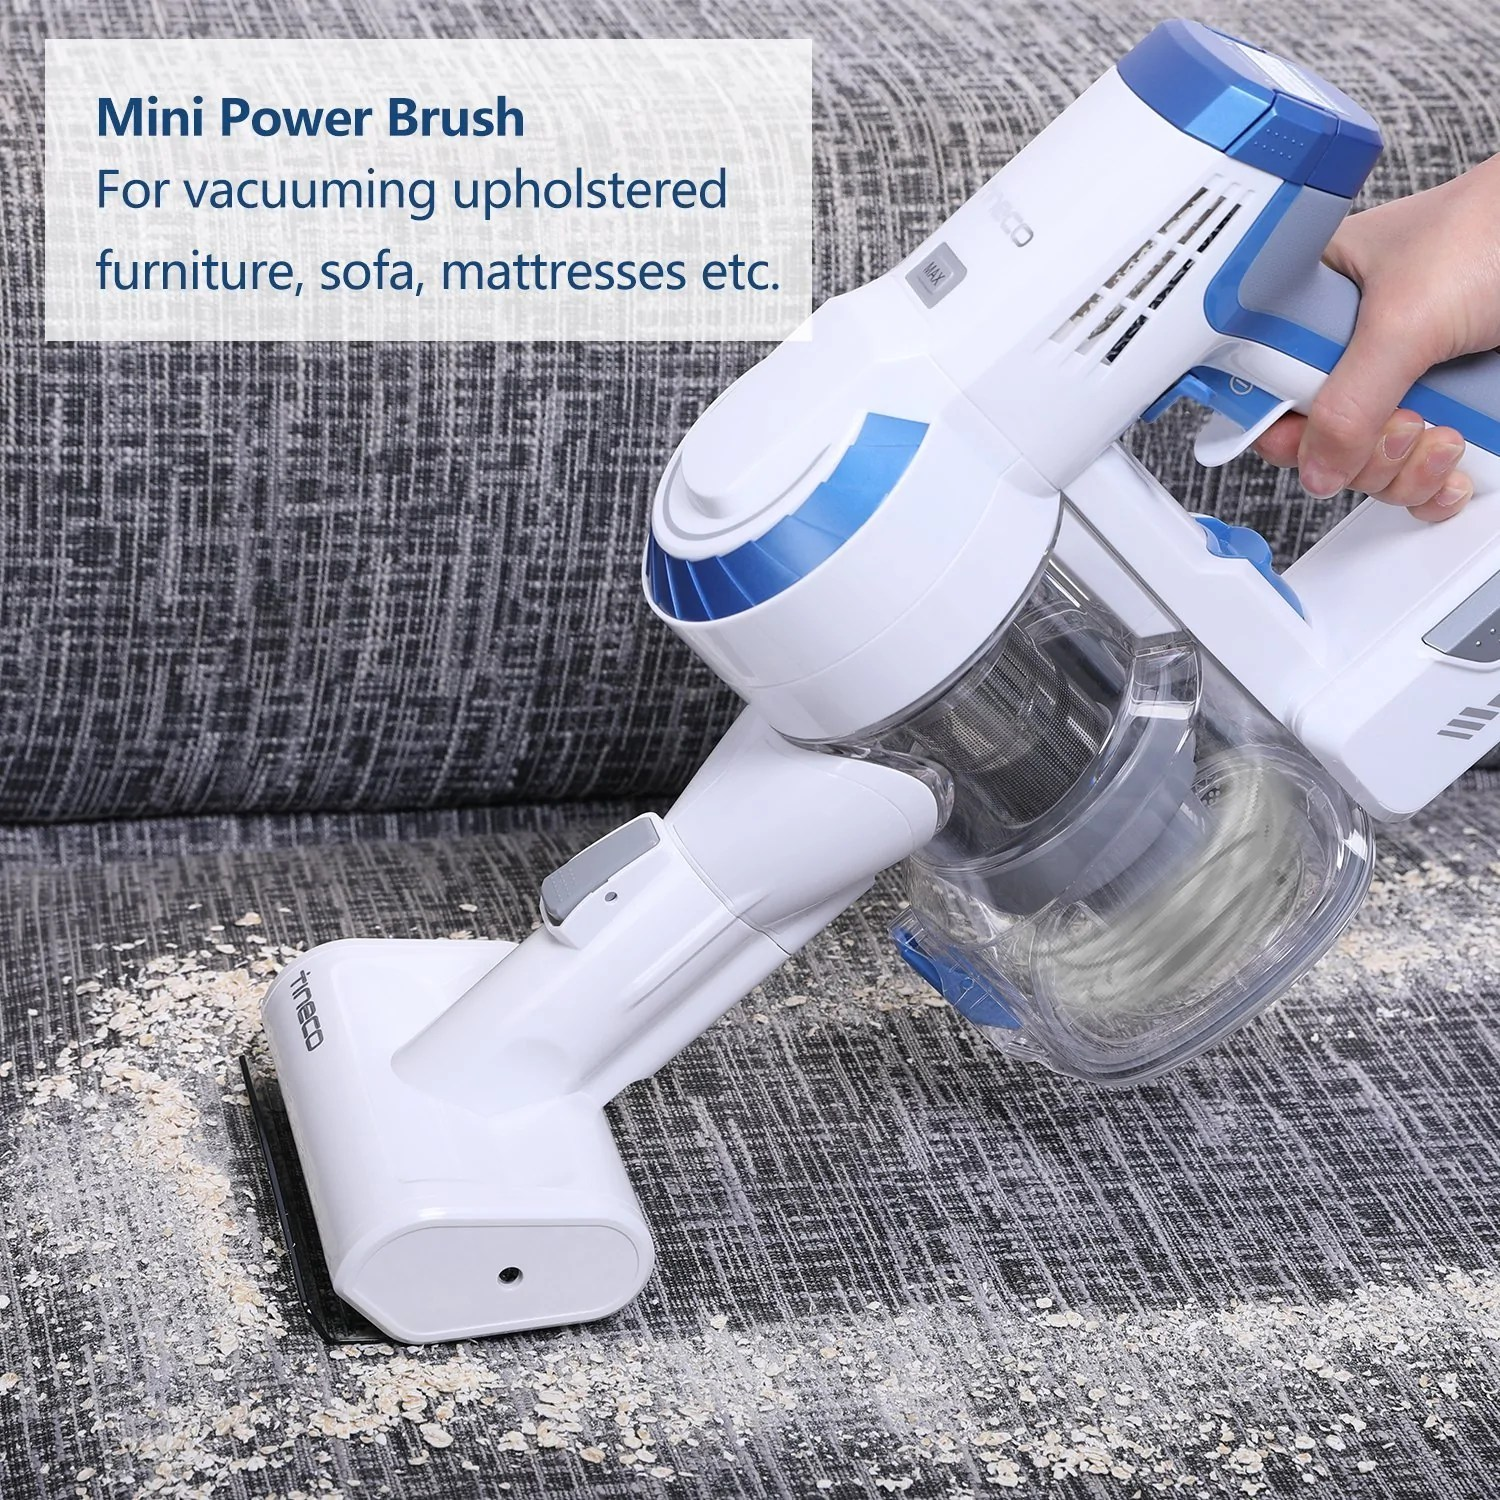 Sofa Vacuum Cleaner Brush Tineco A10 Hero Cordless Vacuum Cleaner 350w Digital Motor Lithium Battery Motorized Led Power Brush 2 In 1 Vacuum Cleaner Cordless Stick Vacuum